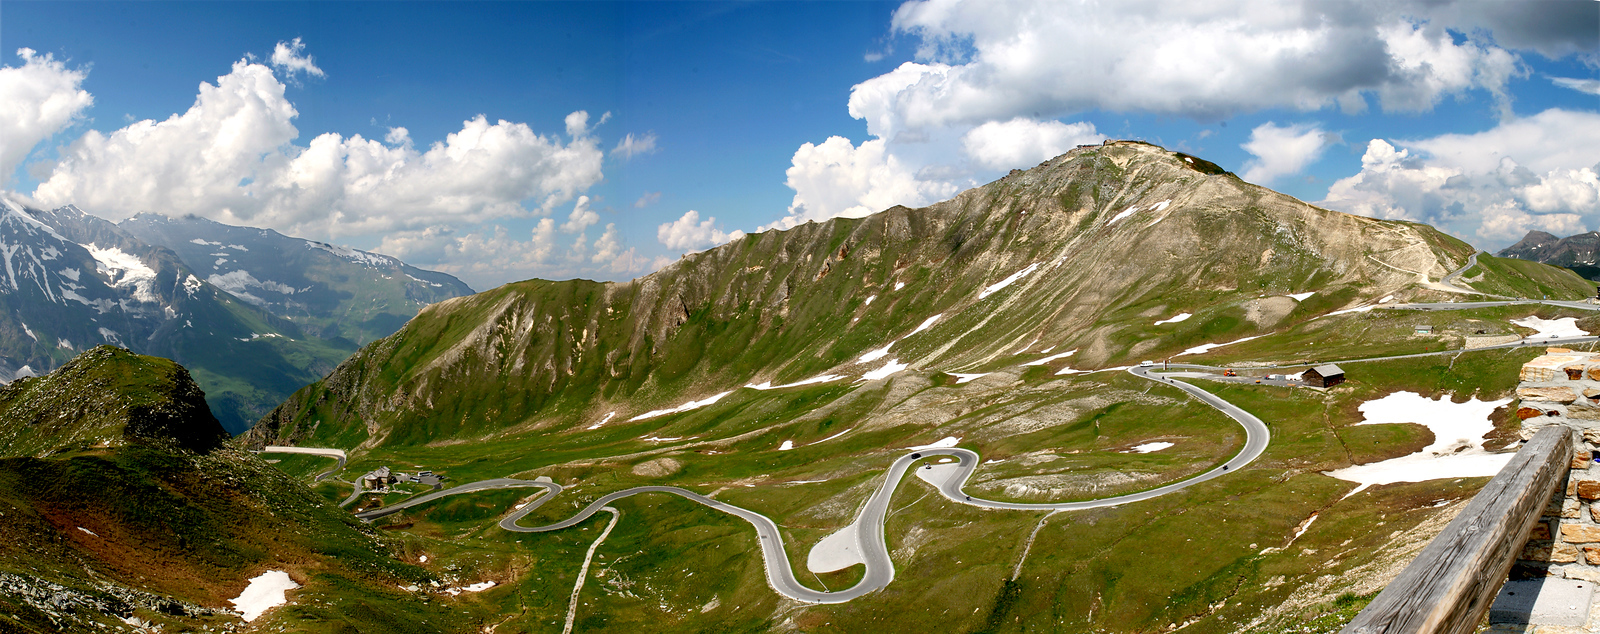 Passo Giau panorama